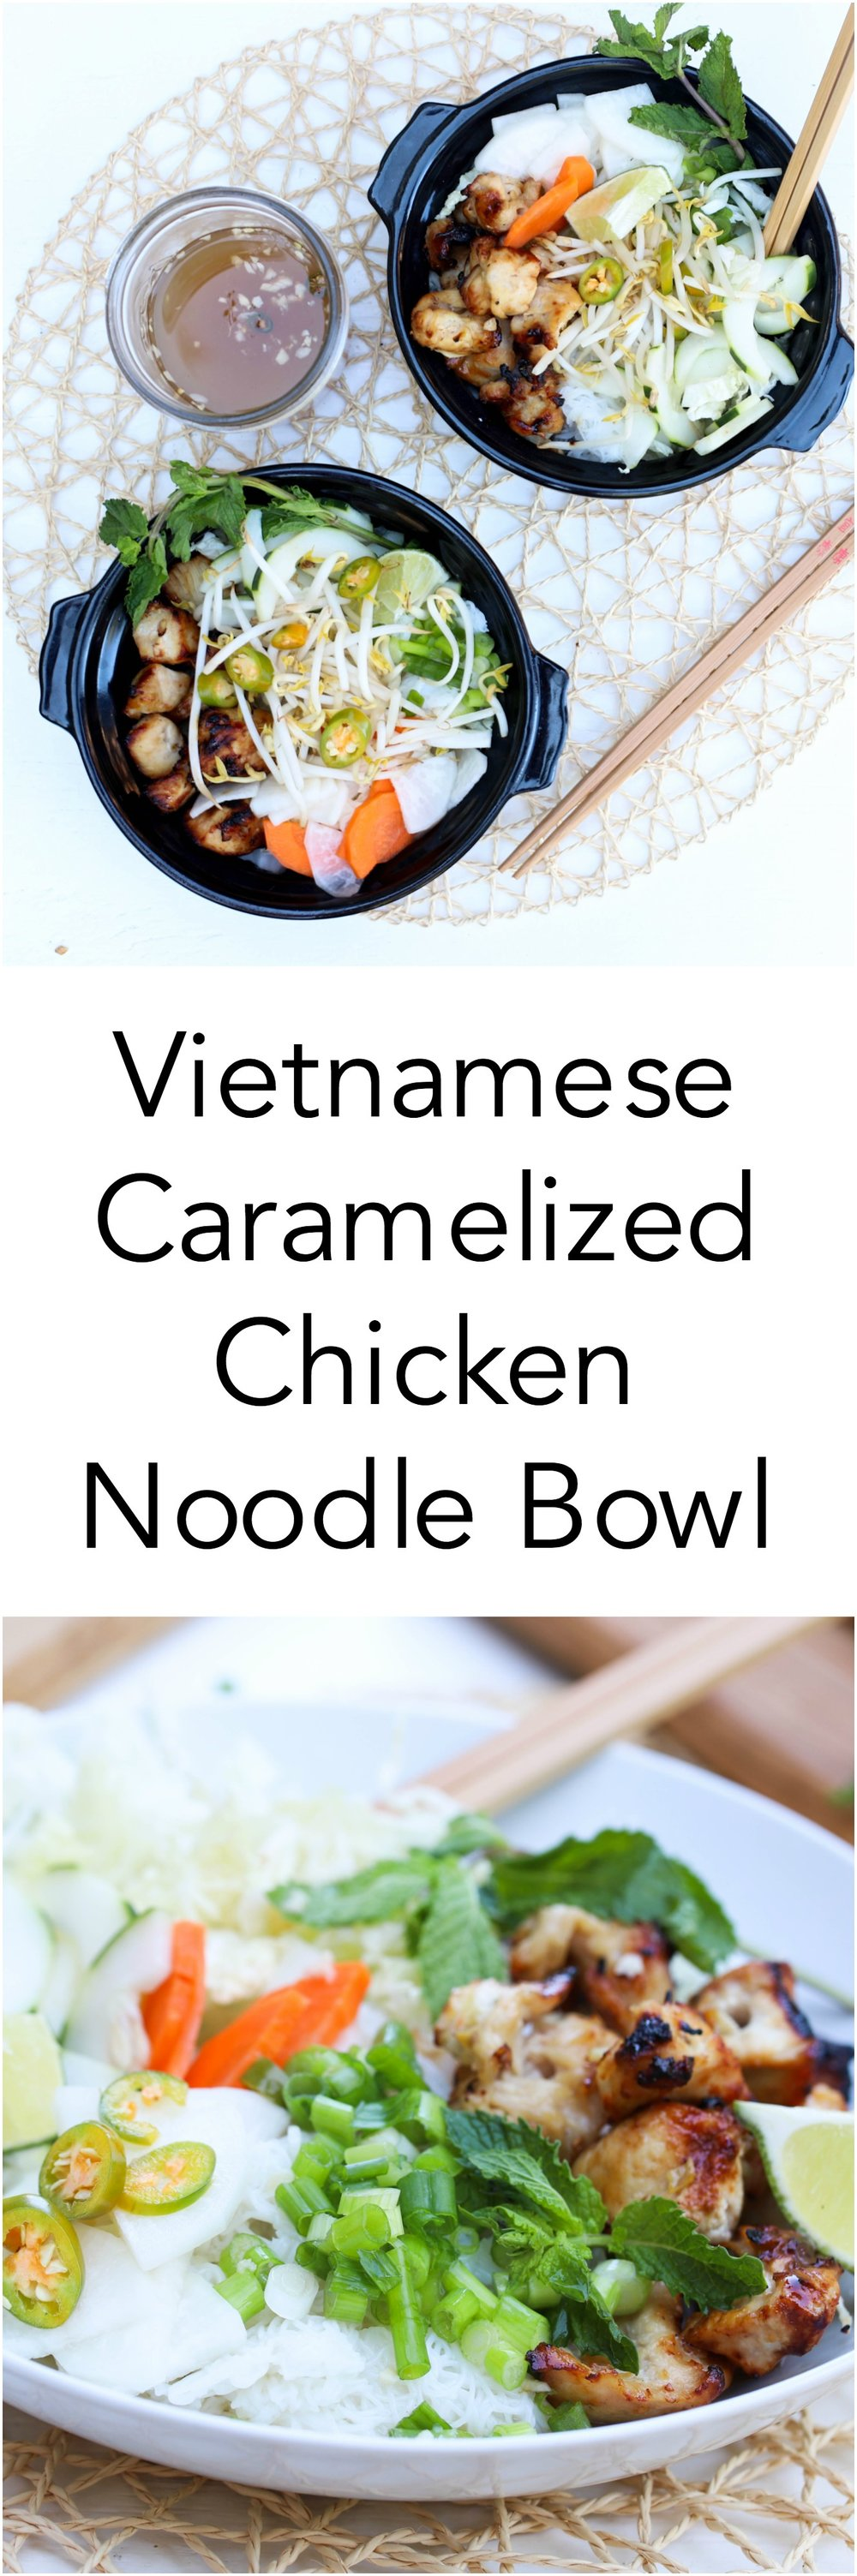 Vietnamese Caramelized Chicken Noodle Bowl.jpg